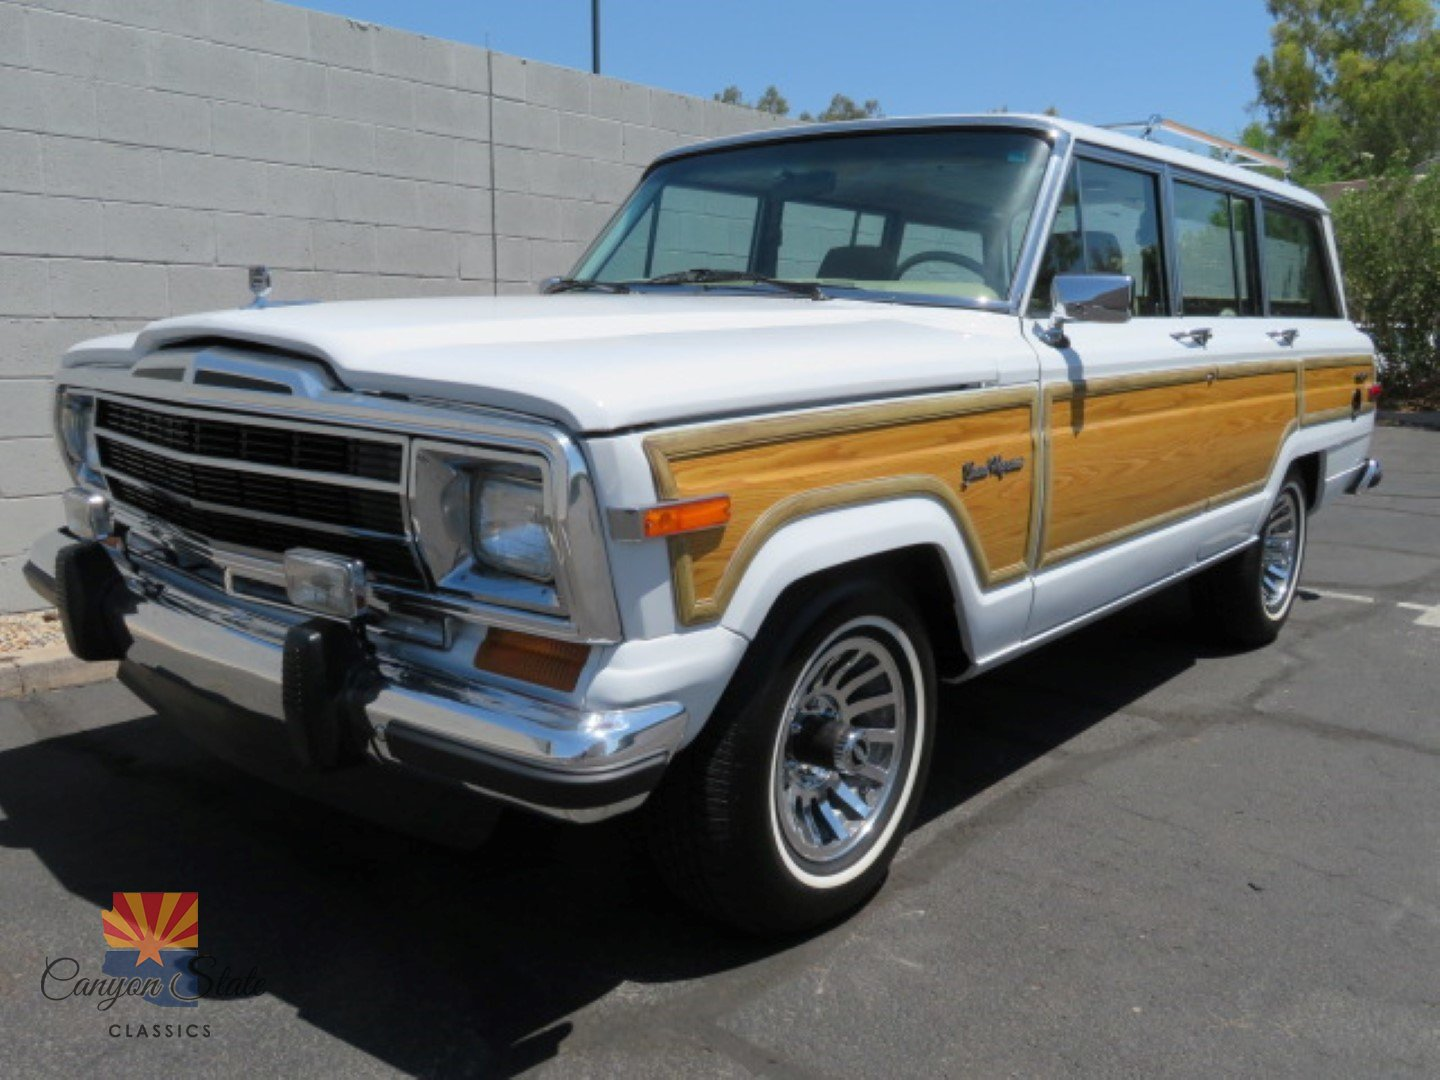 1990 jeep grand wagoneer canyon state classics. Black Bedroom Furniture Sets. Home Design Ideas